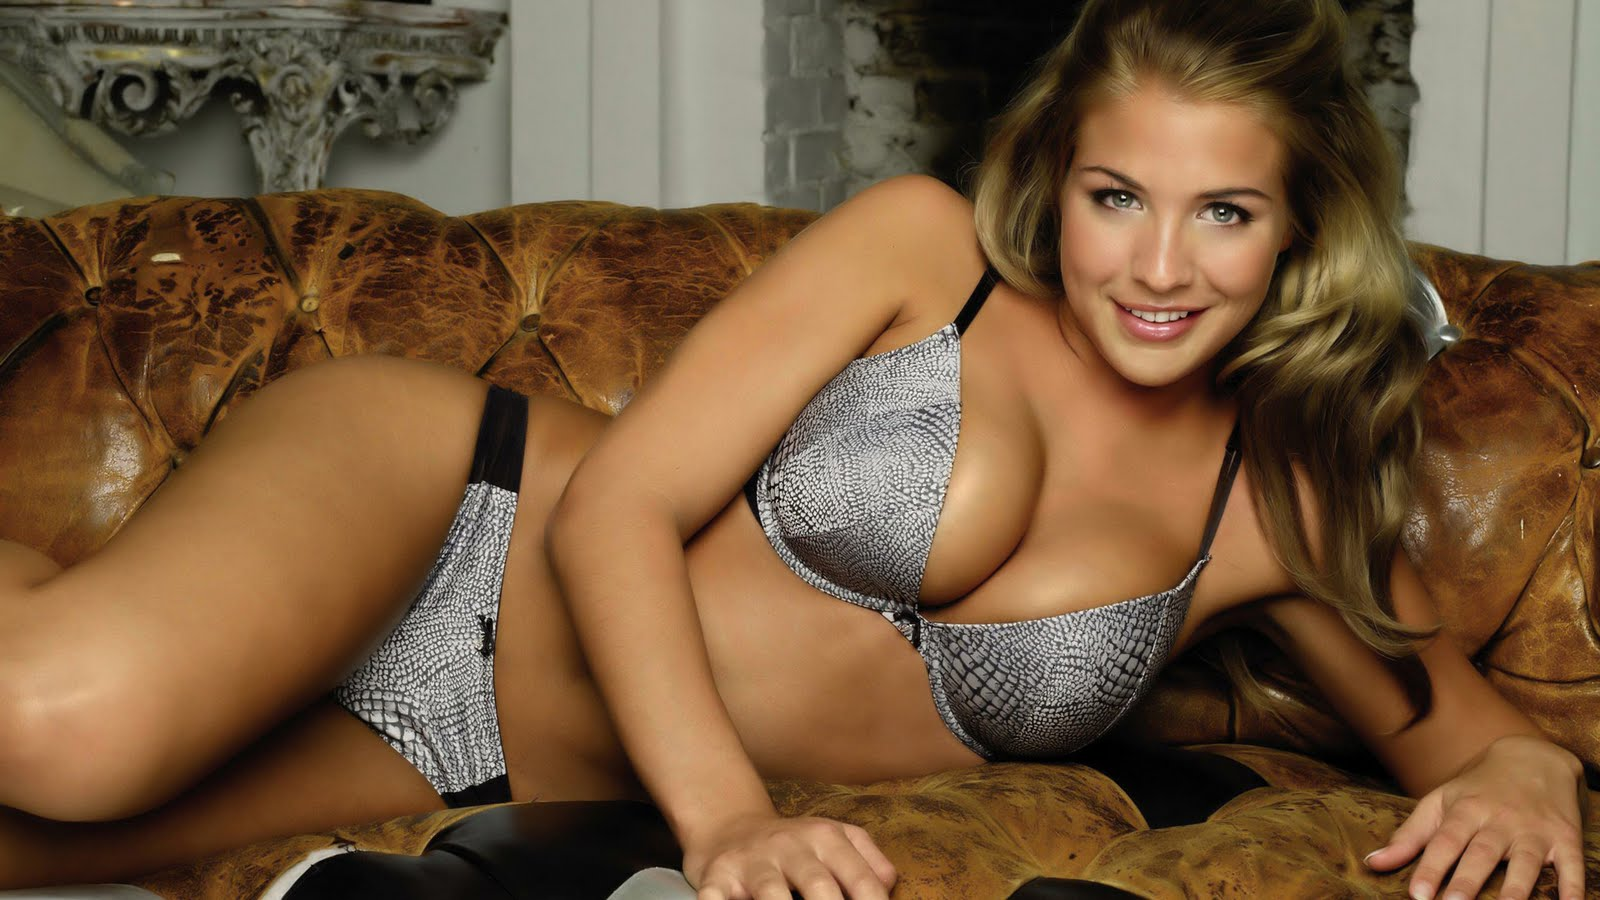 http://2.bp.blogspot.com/-Qpg5-D516T8/TcIp1xR1EgI/AAAAAAAAAFo/HfLLNnJ-wXE/s1600/The-best-top-desktop-gemma-atkinson-wallpapers-hd-gemma-atkinson-wallpaper-29.jpg